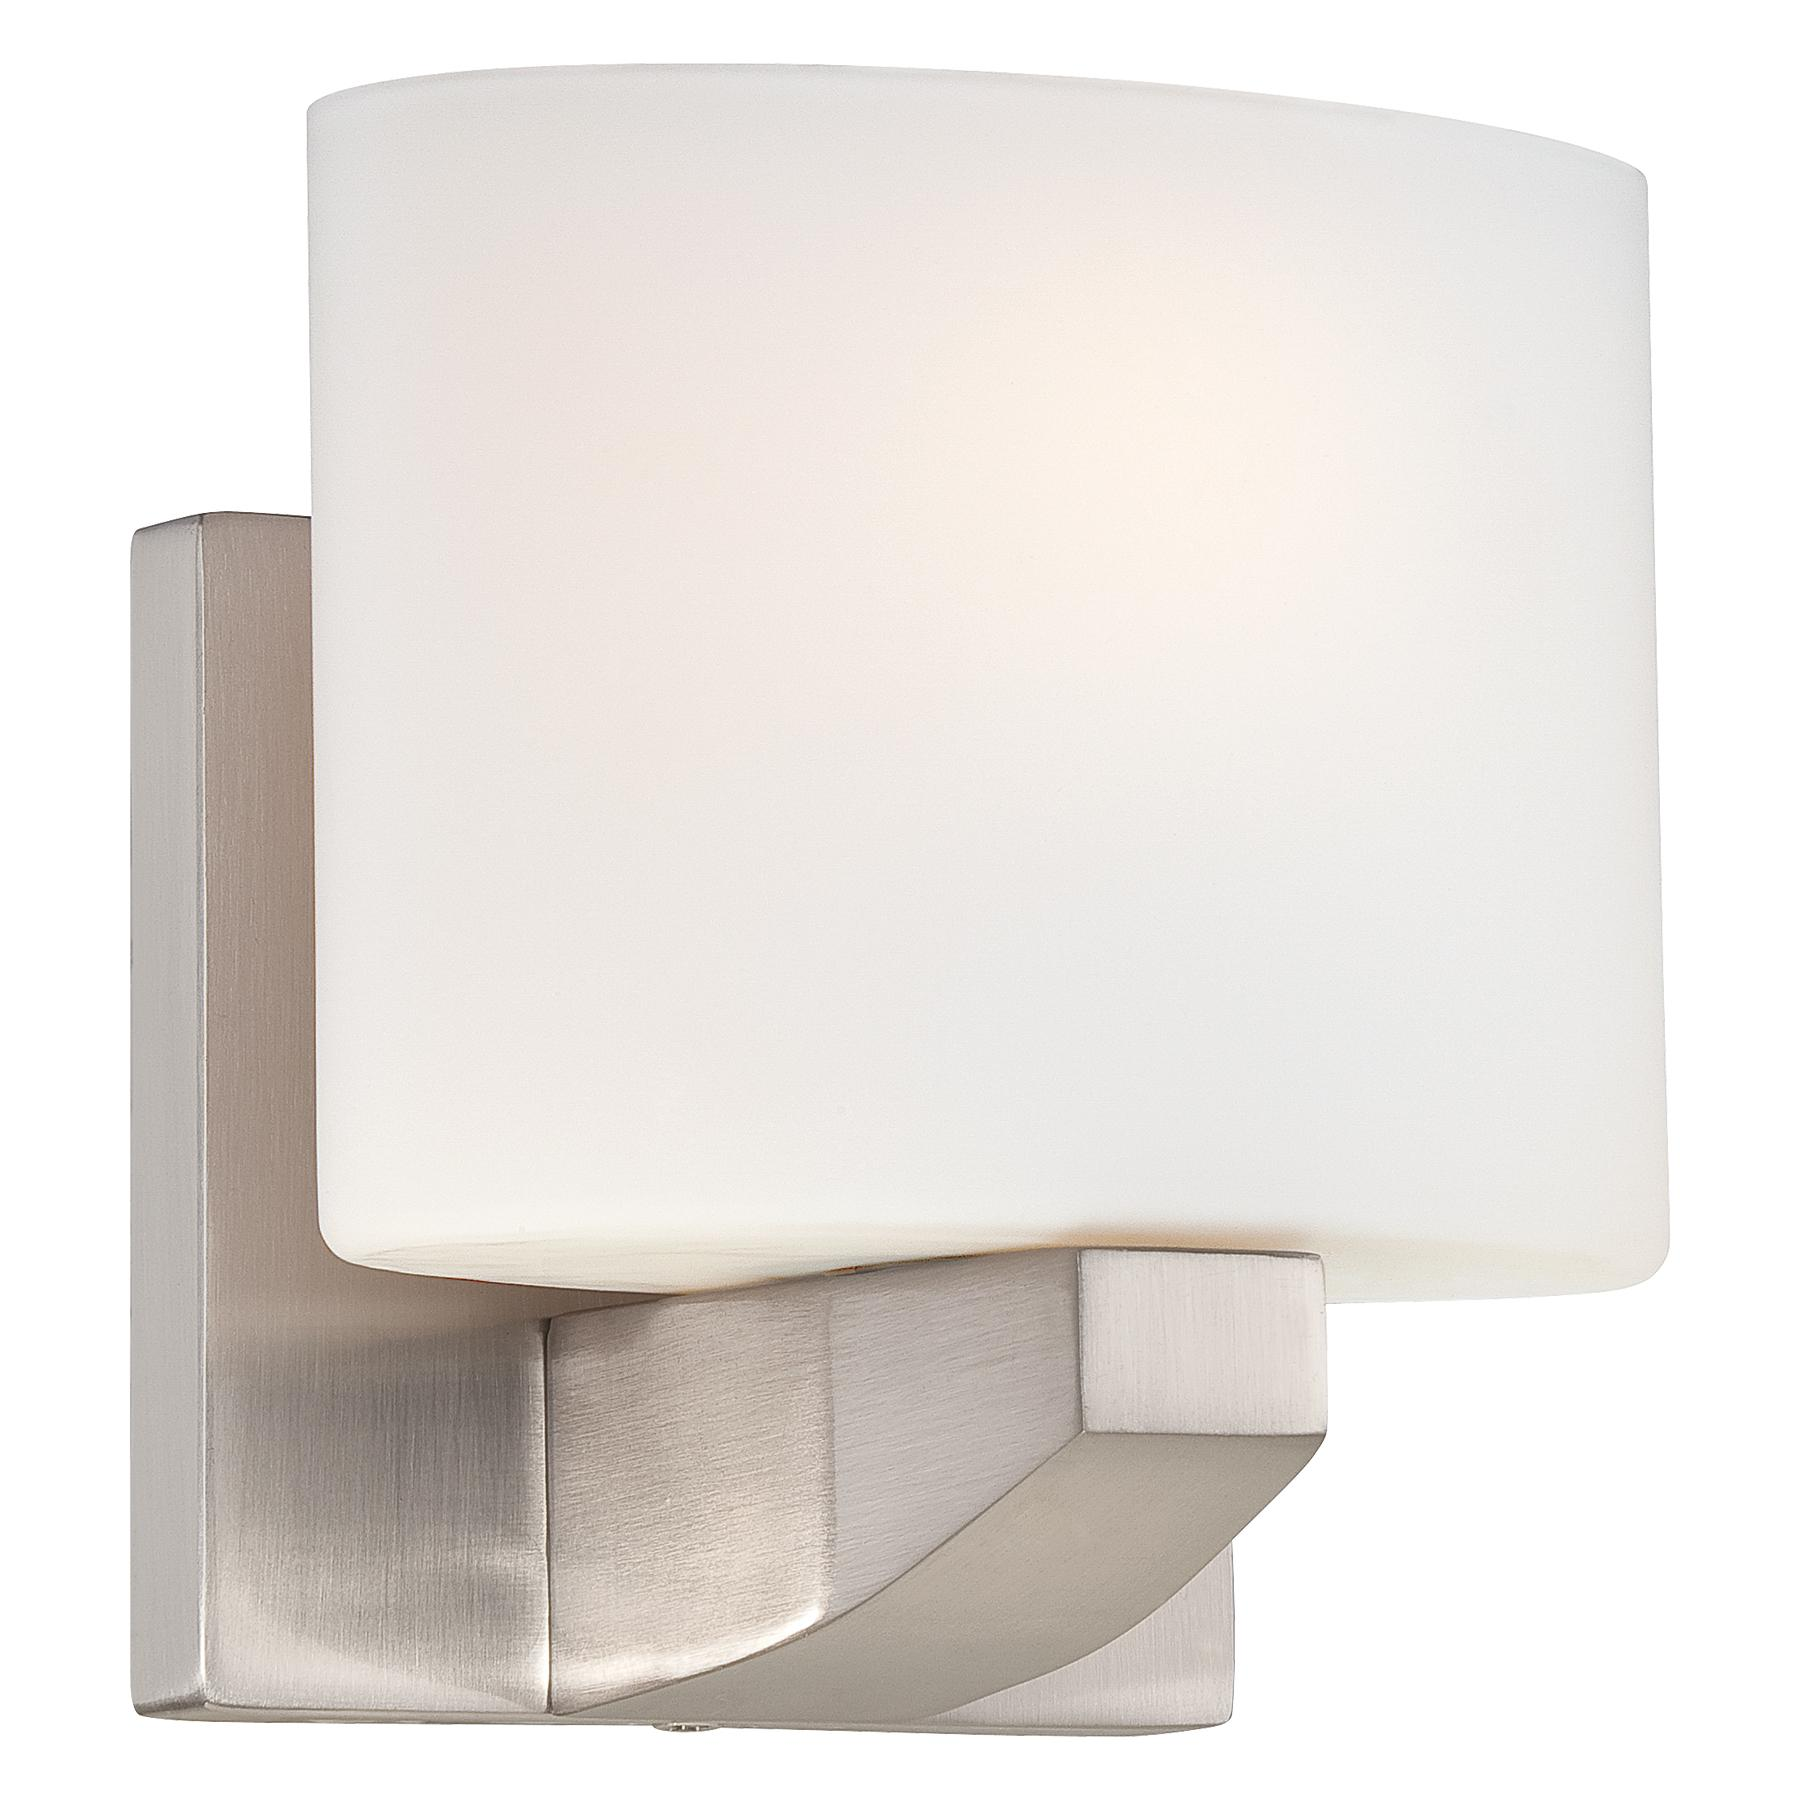 Modern Craftsman Bathroom Vanity Light By Minka Lavery - Minka lavery bathroom fixtures